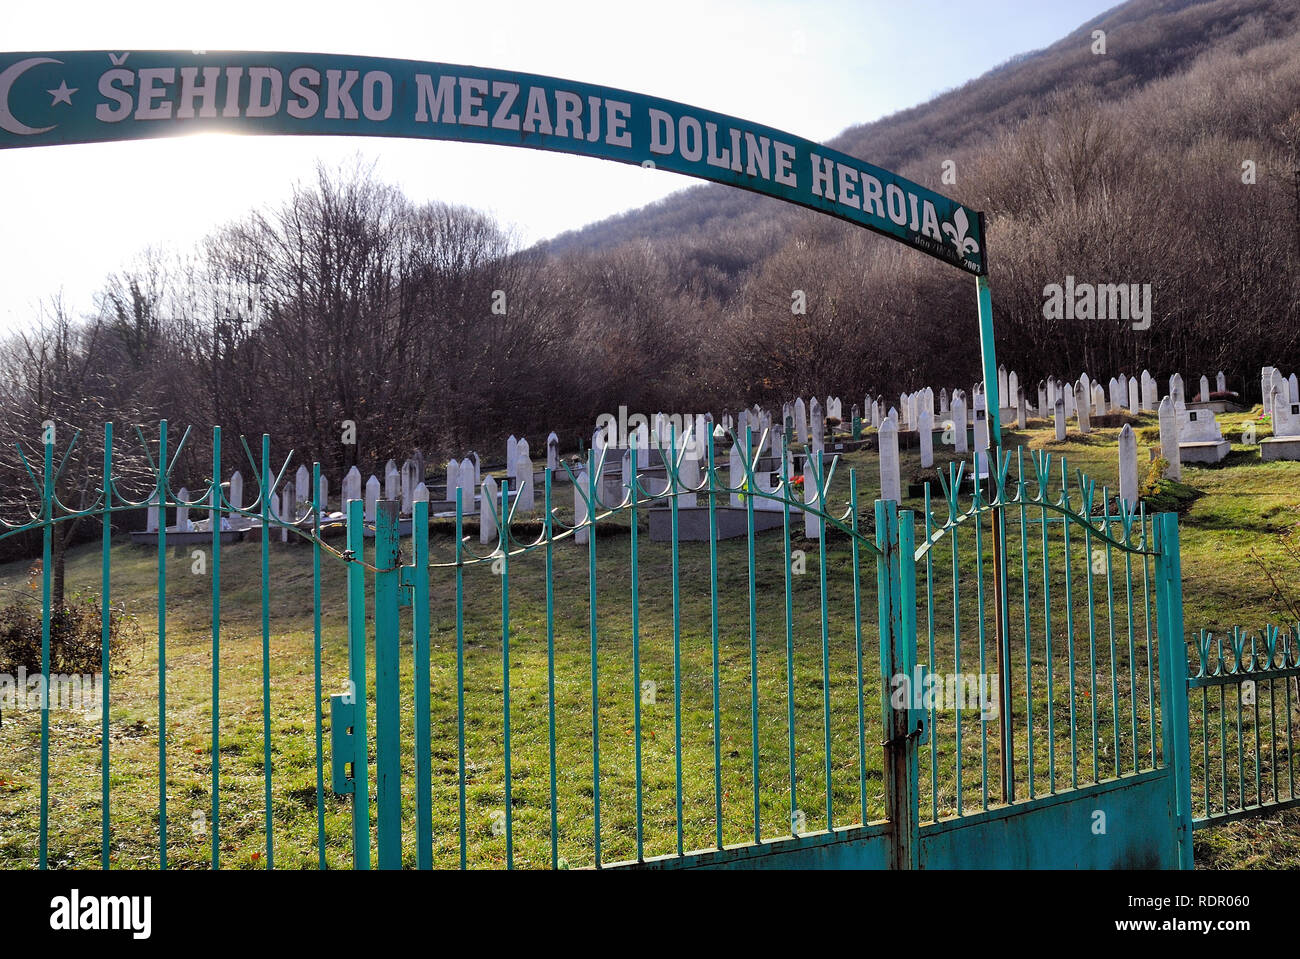 Cemetery And Monument Dedicated To The Victims Of Serb Aggression During 1992 1995 War